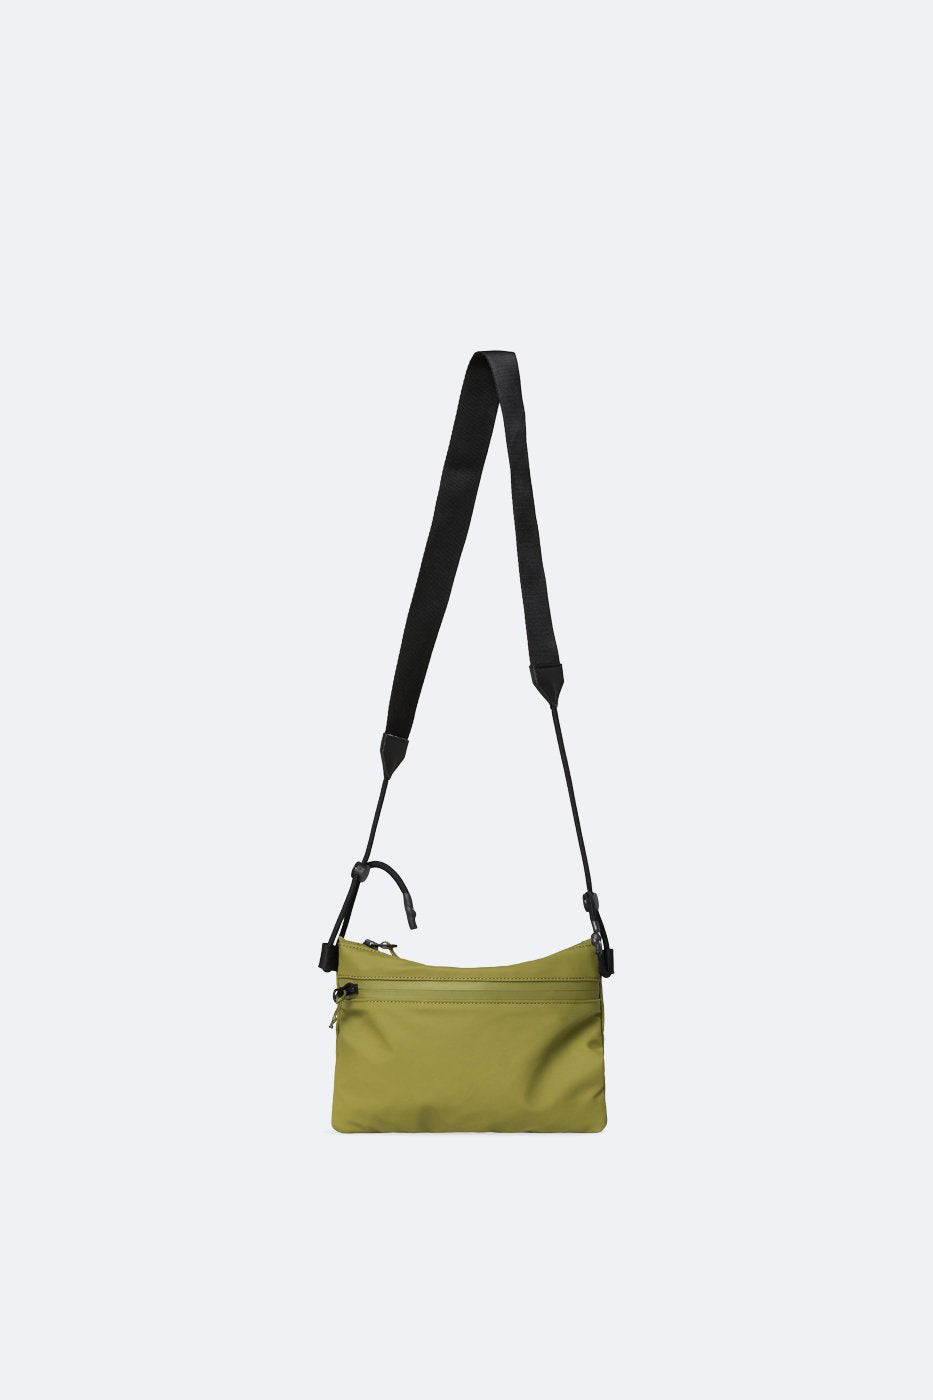 Rains - Ultralight Pouch - Sage